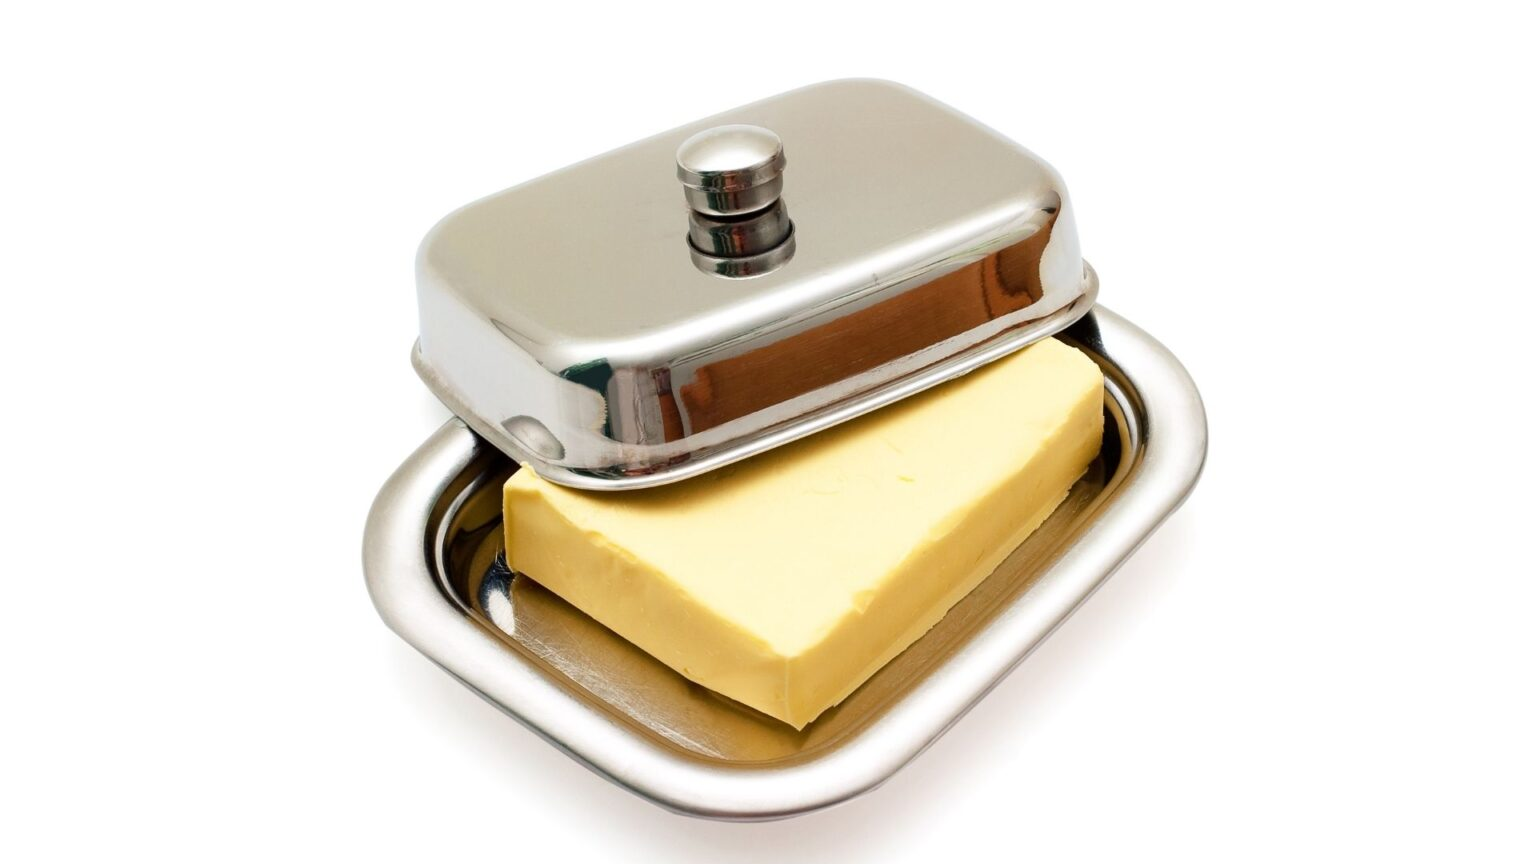 Stainless Steel Butter Dish